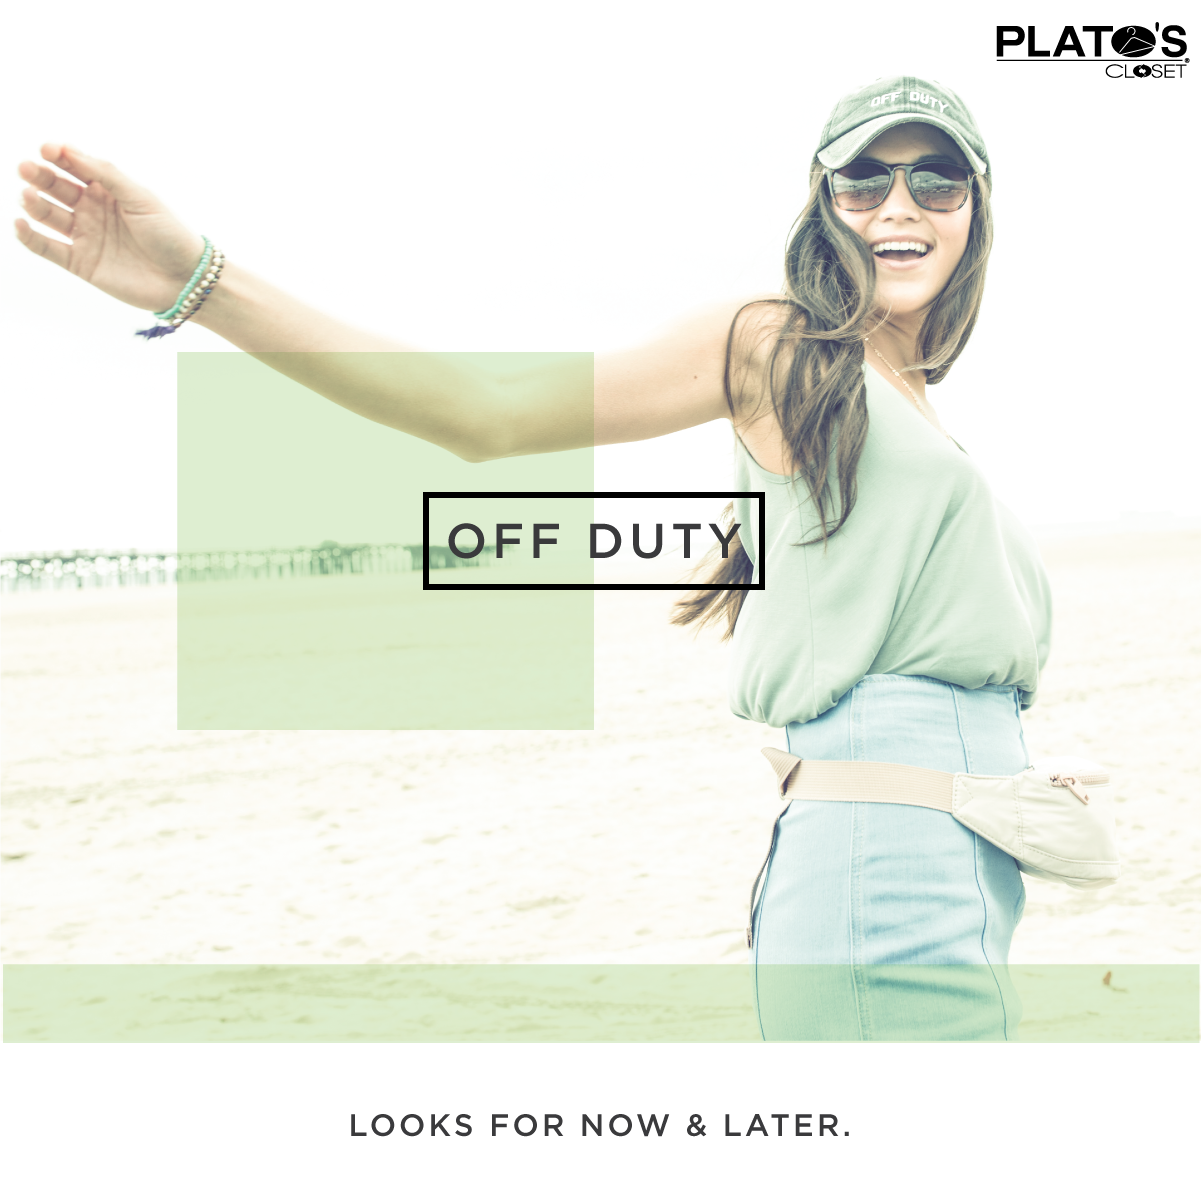 School's out and that means you can wear your off duty look around the clock! Find your next #OOTD during a visit to Plato's Closet and save even more with our everyday low prices.